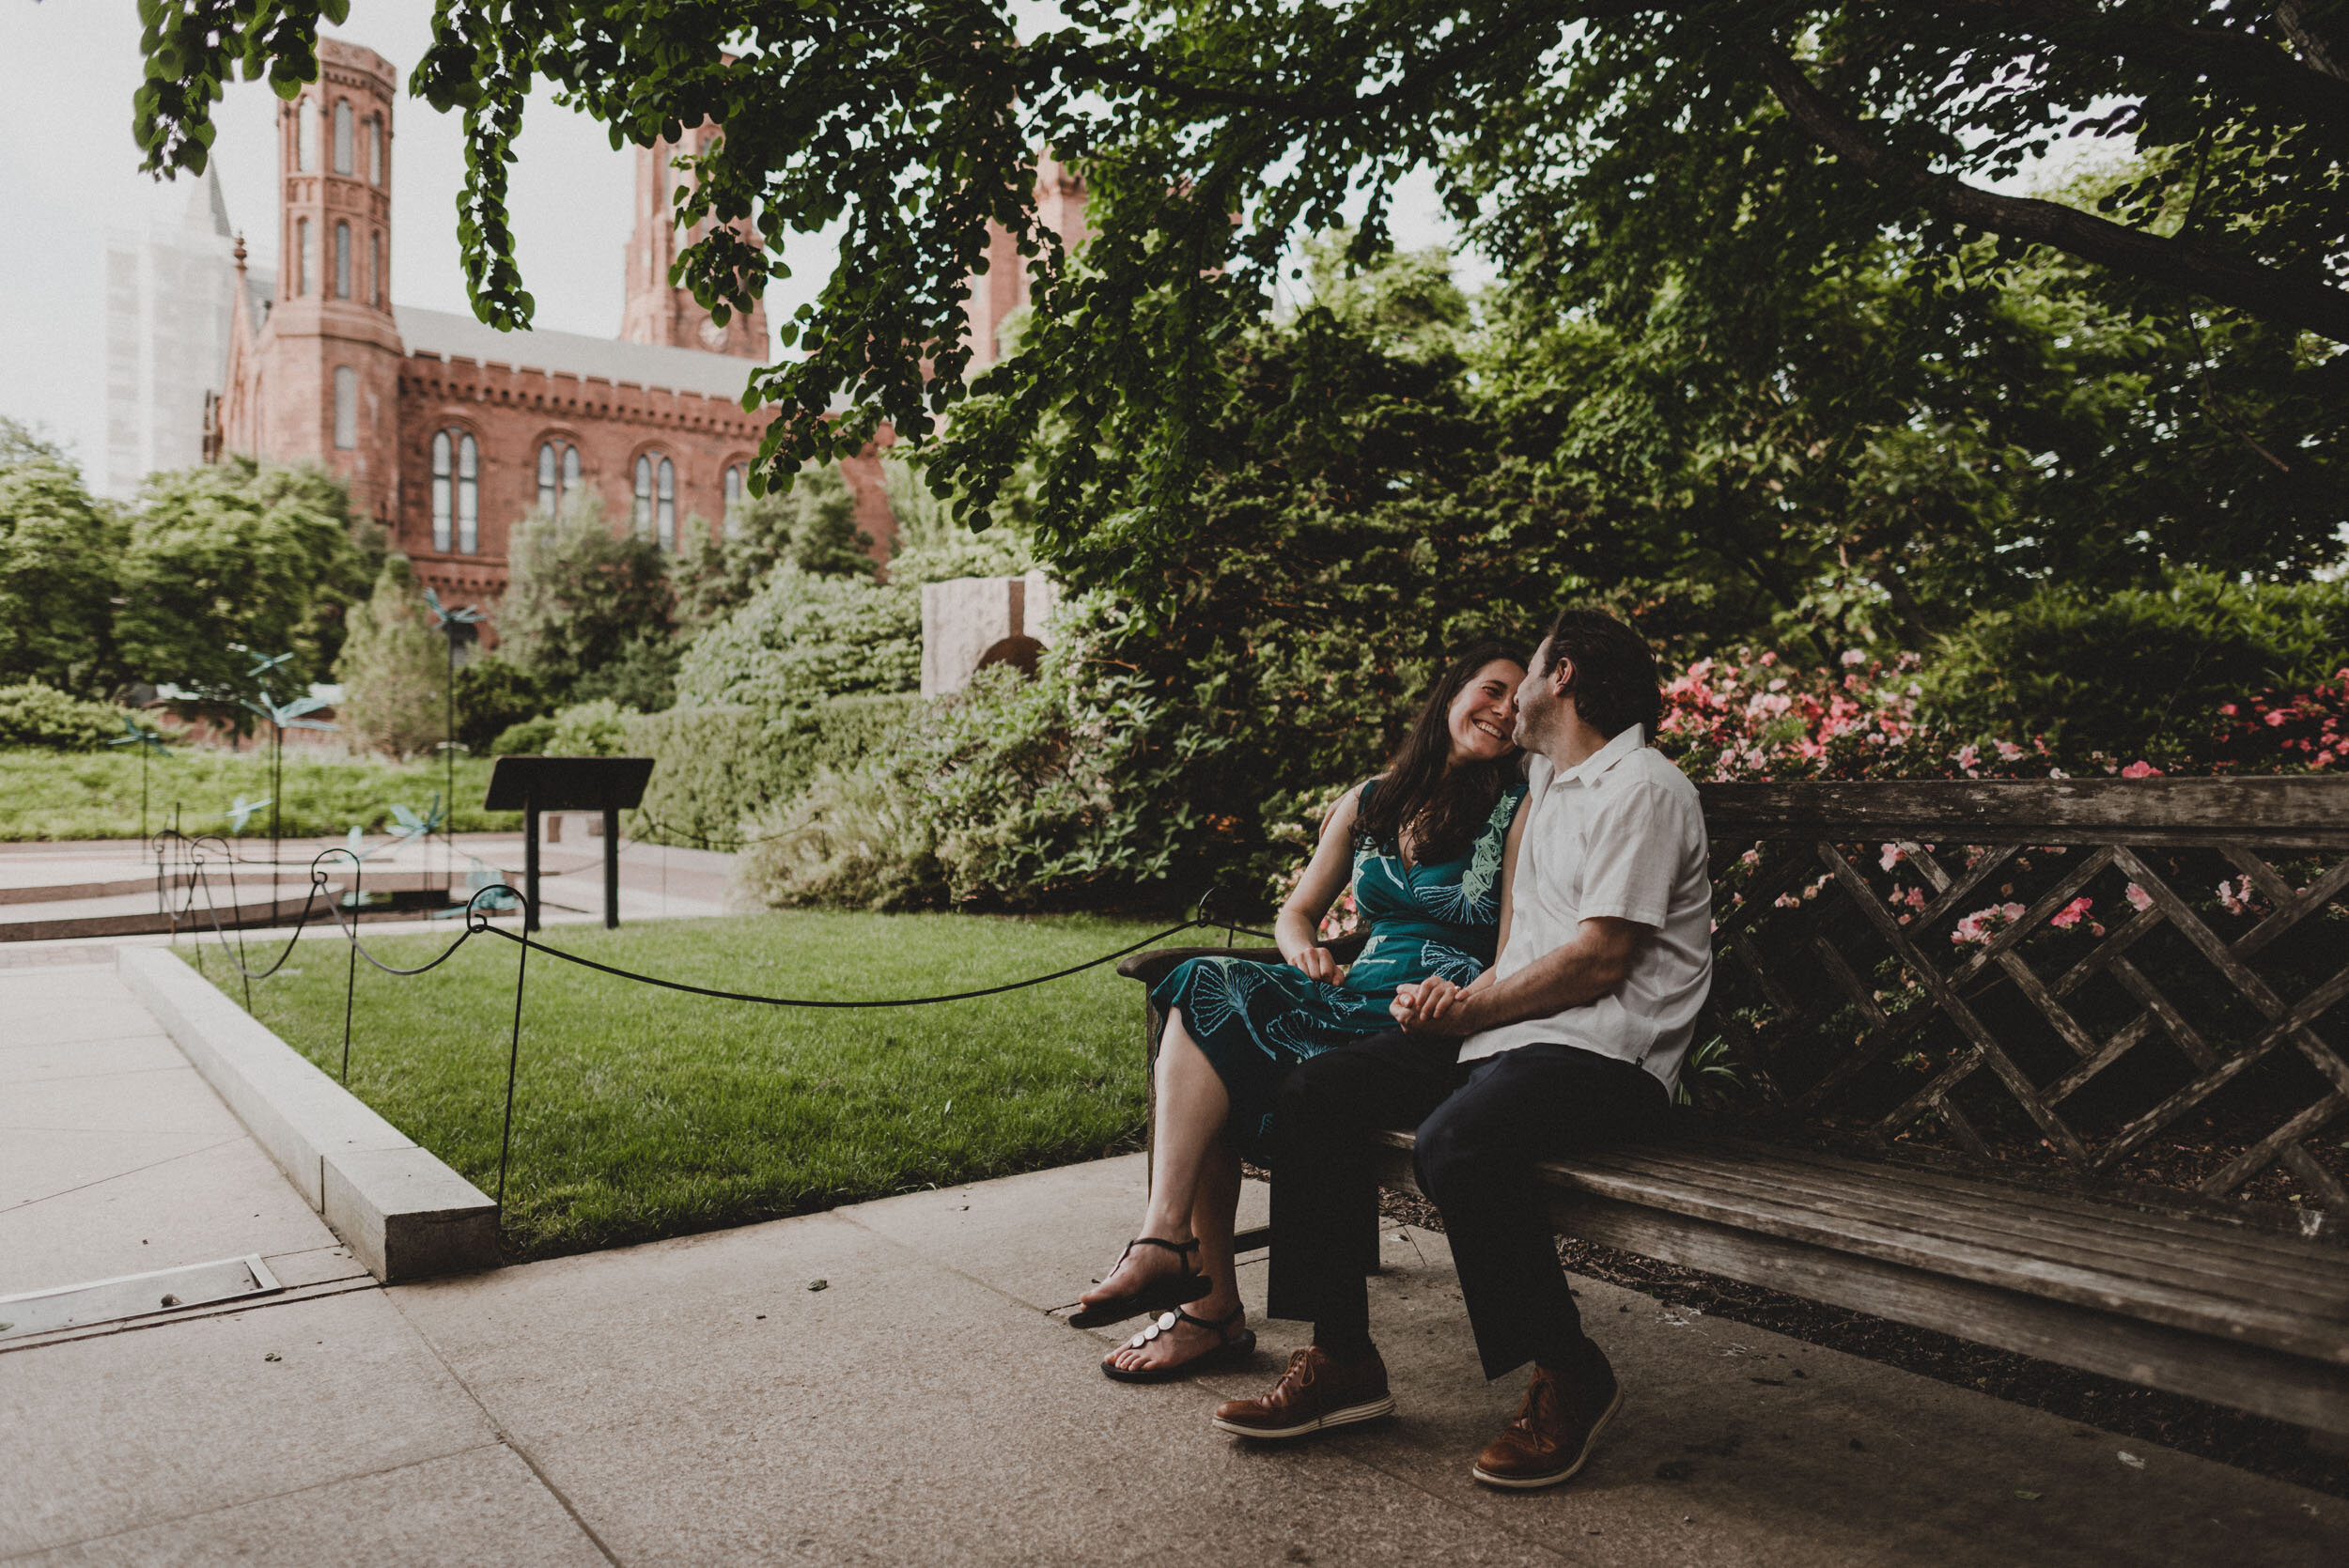 Moongate_Garden_Engagement-1.jpg